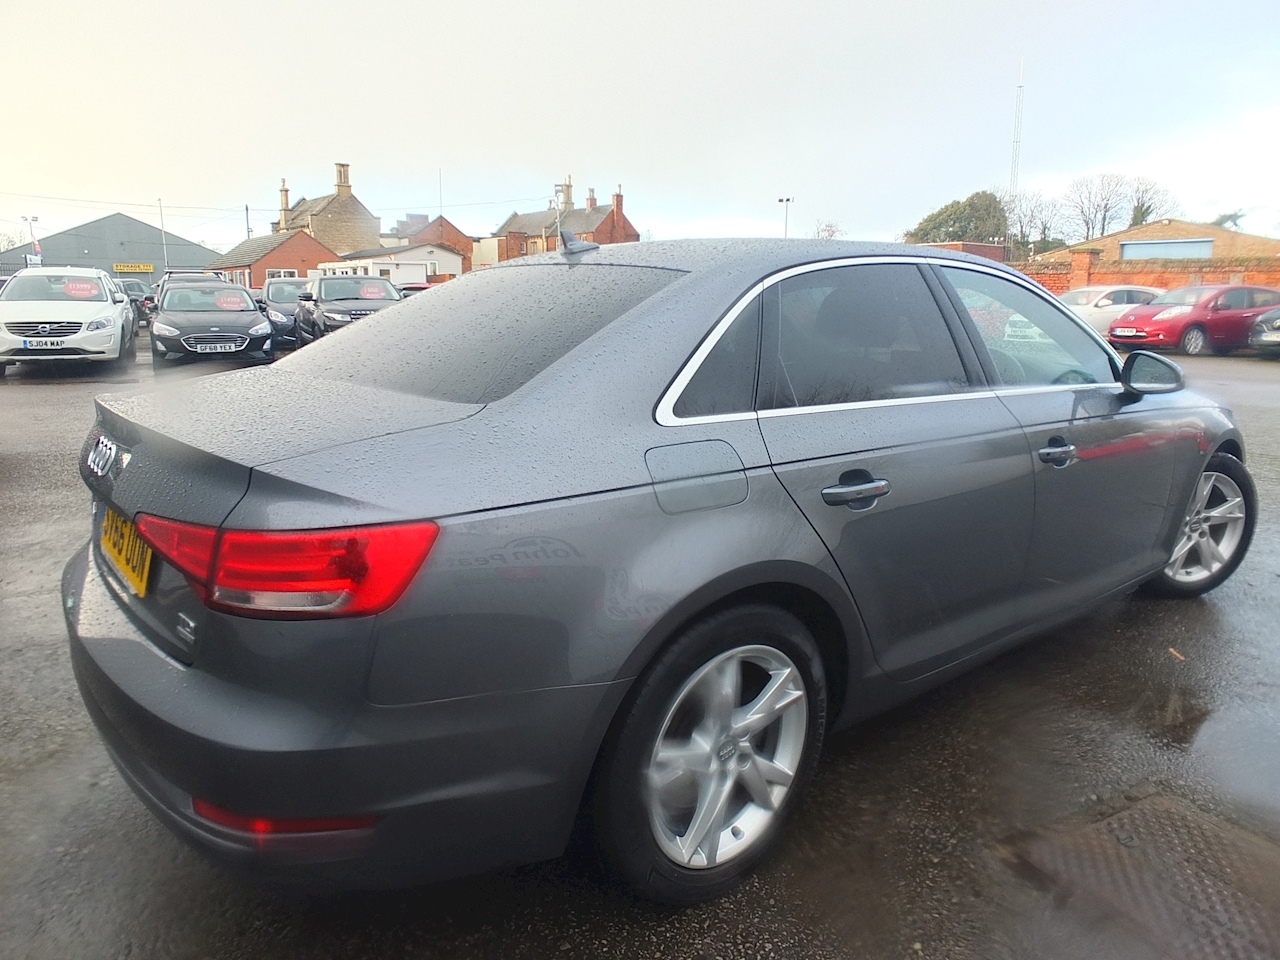 A4 Tdi Ultra Se Saloon 2.0 Manual Diesel